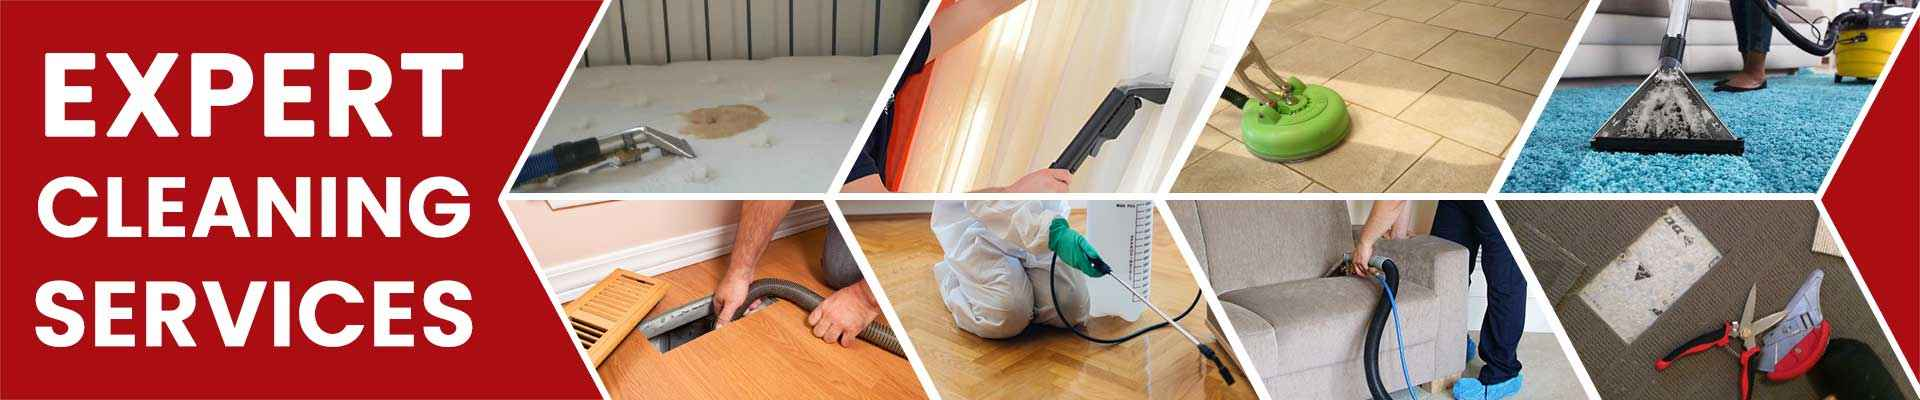 Expert Cleaning Services Brisbane